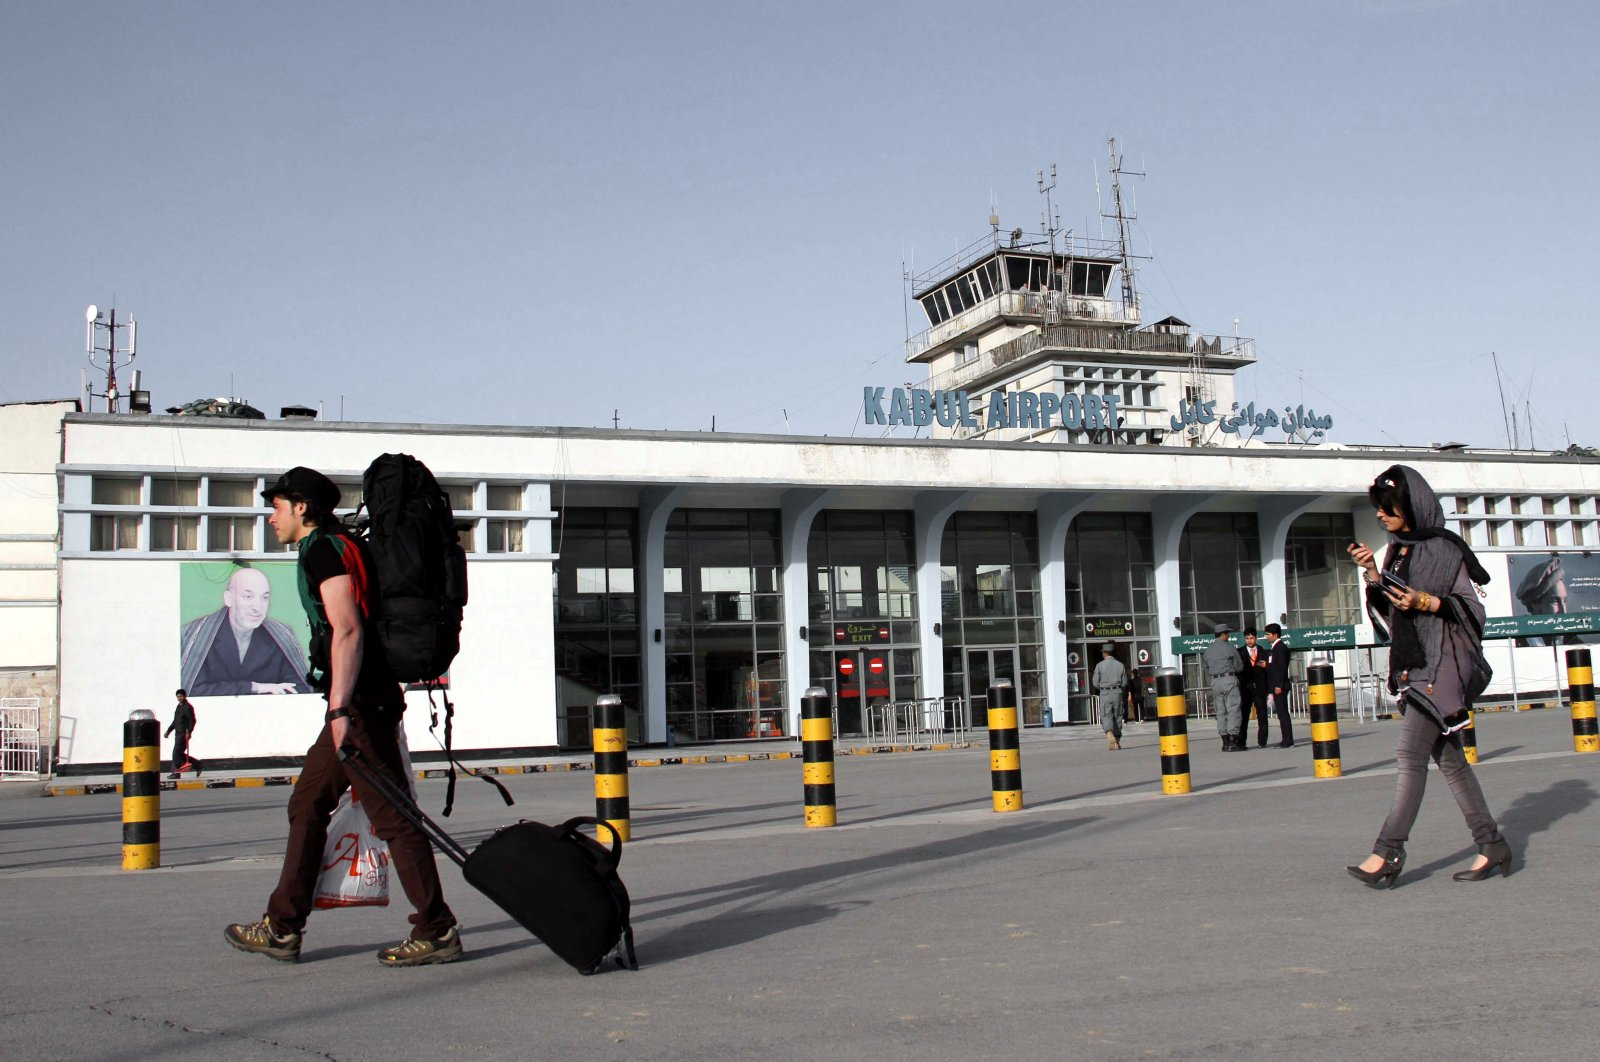 Passengers pass a portrait of Afghan President Hamid Karzai at Kabul International Airport, in Kabul, Afghanistan, March 26, 2012. (EPA Photo)